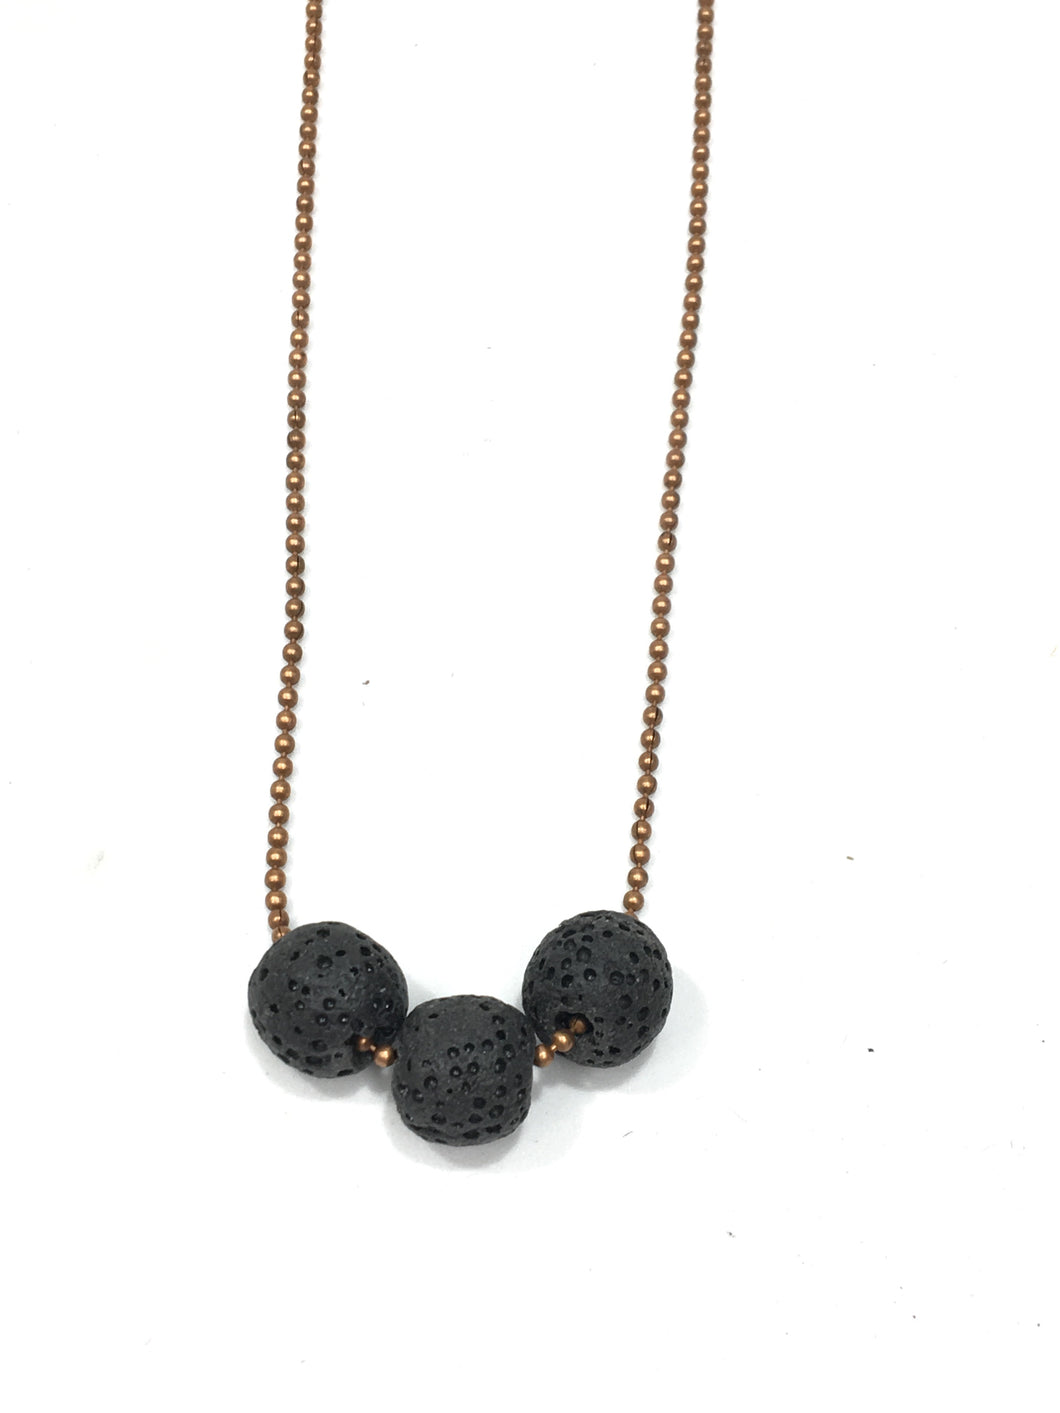 Lava Diffuser Necklace - 3 Beads